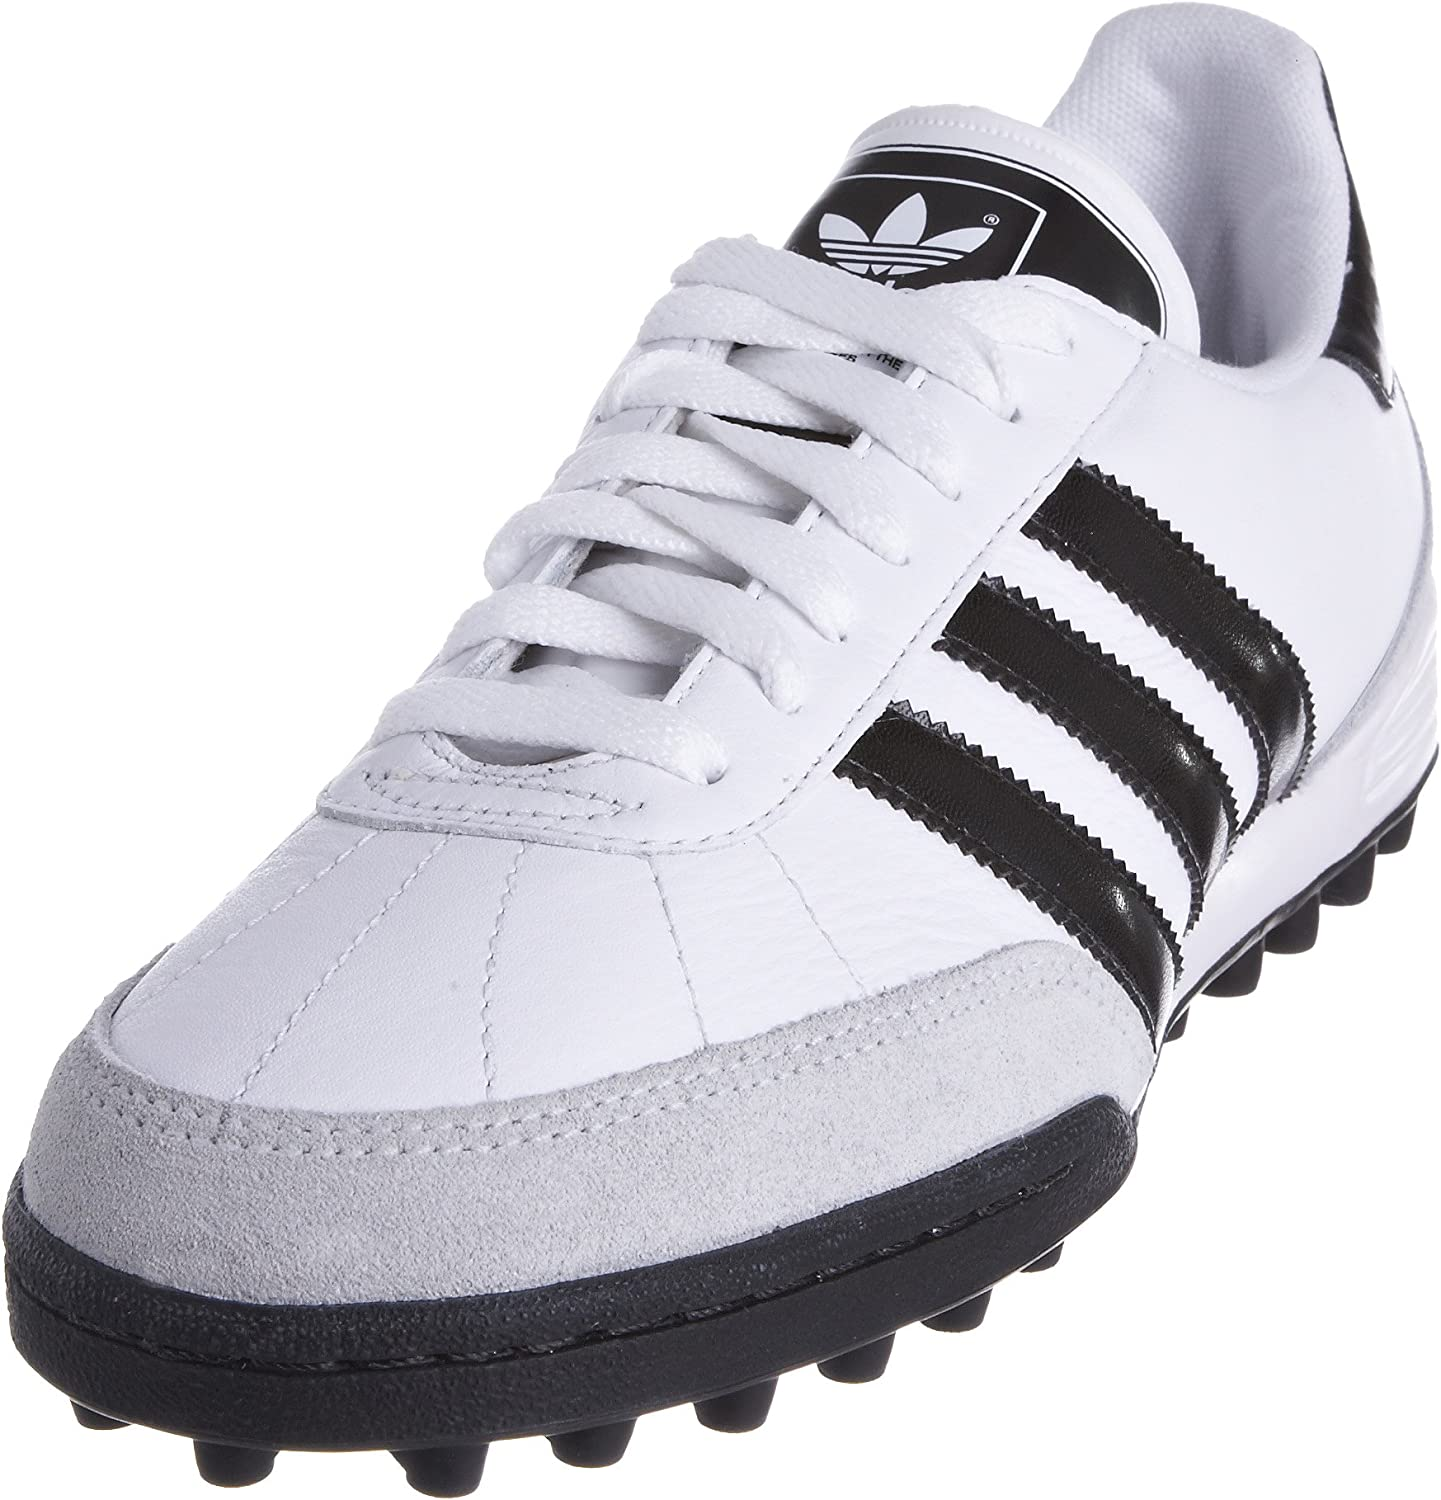 Adidas Men's Hardground TR Indoor Trainers